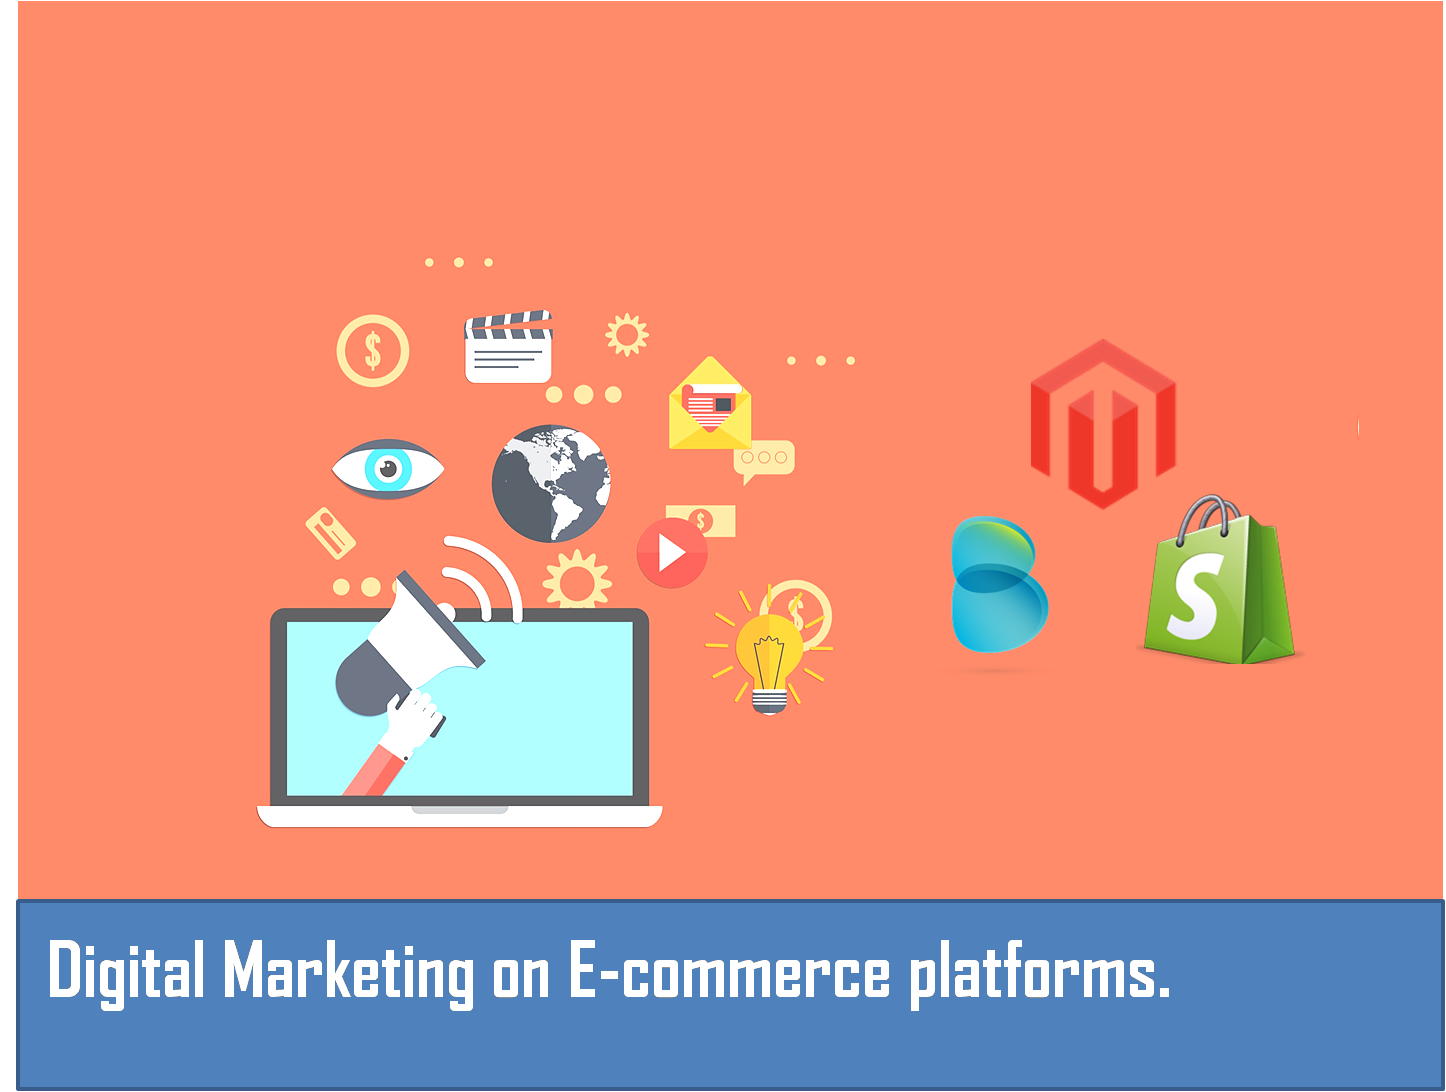 Digital marketing on E-commerce platforms